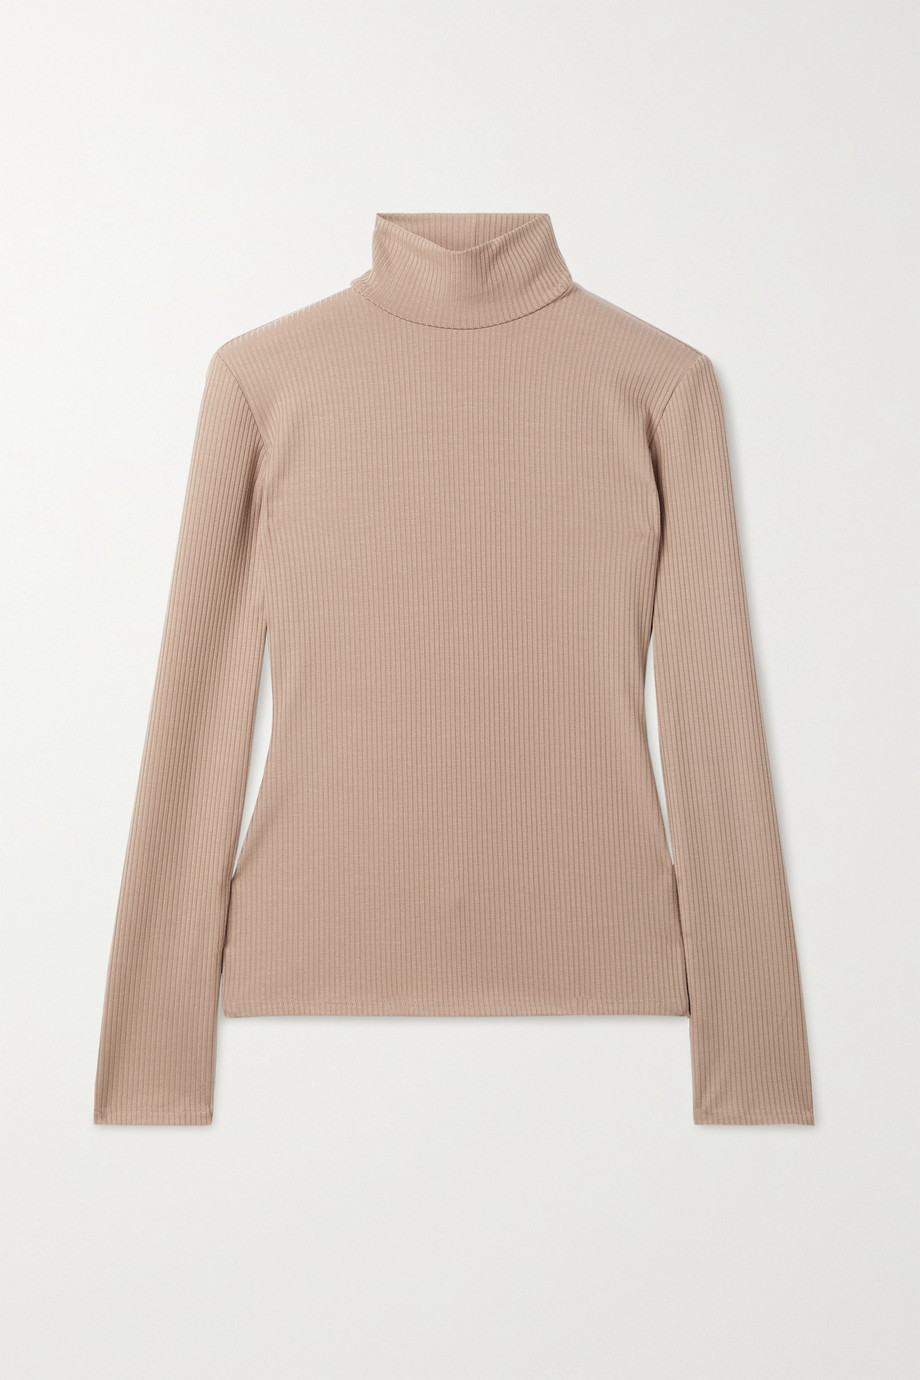 Reformation + NET SUSTAIN Ira ribbed stretch-TENCEL Lyocell turtleneck top